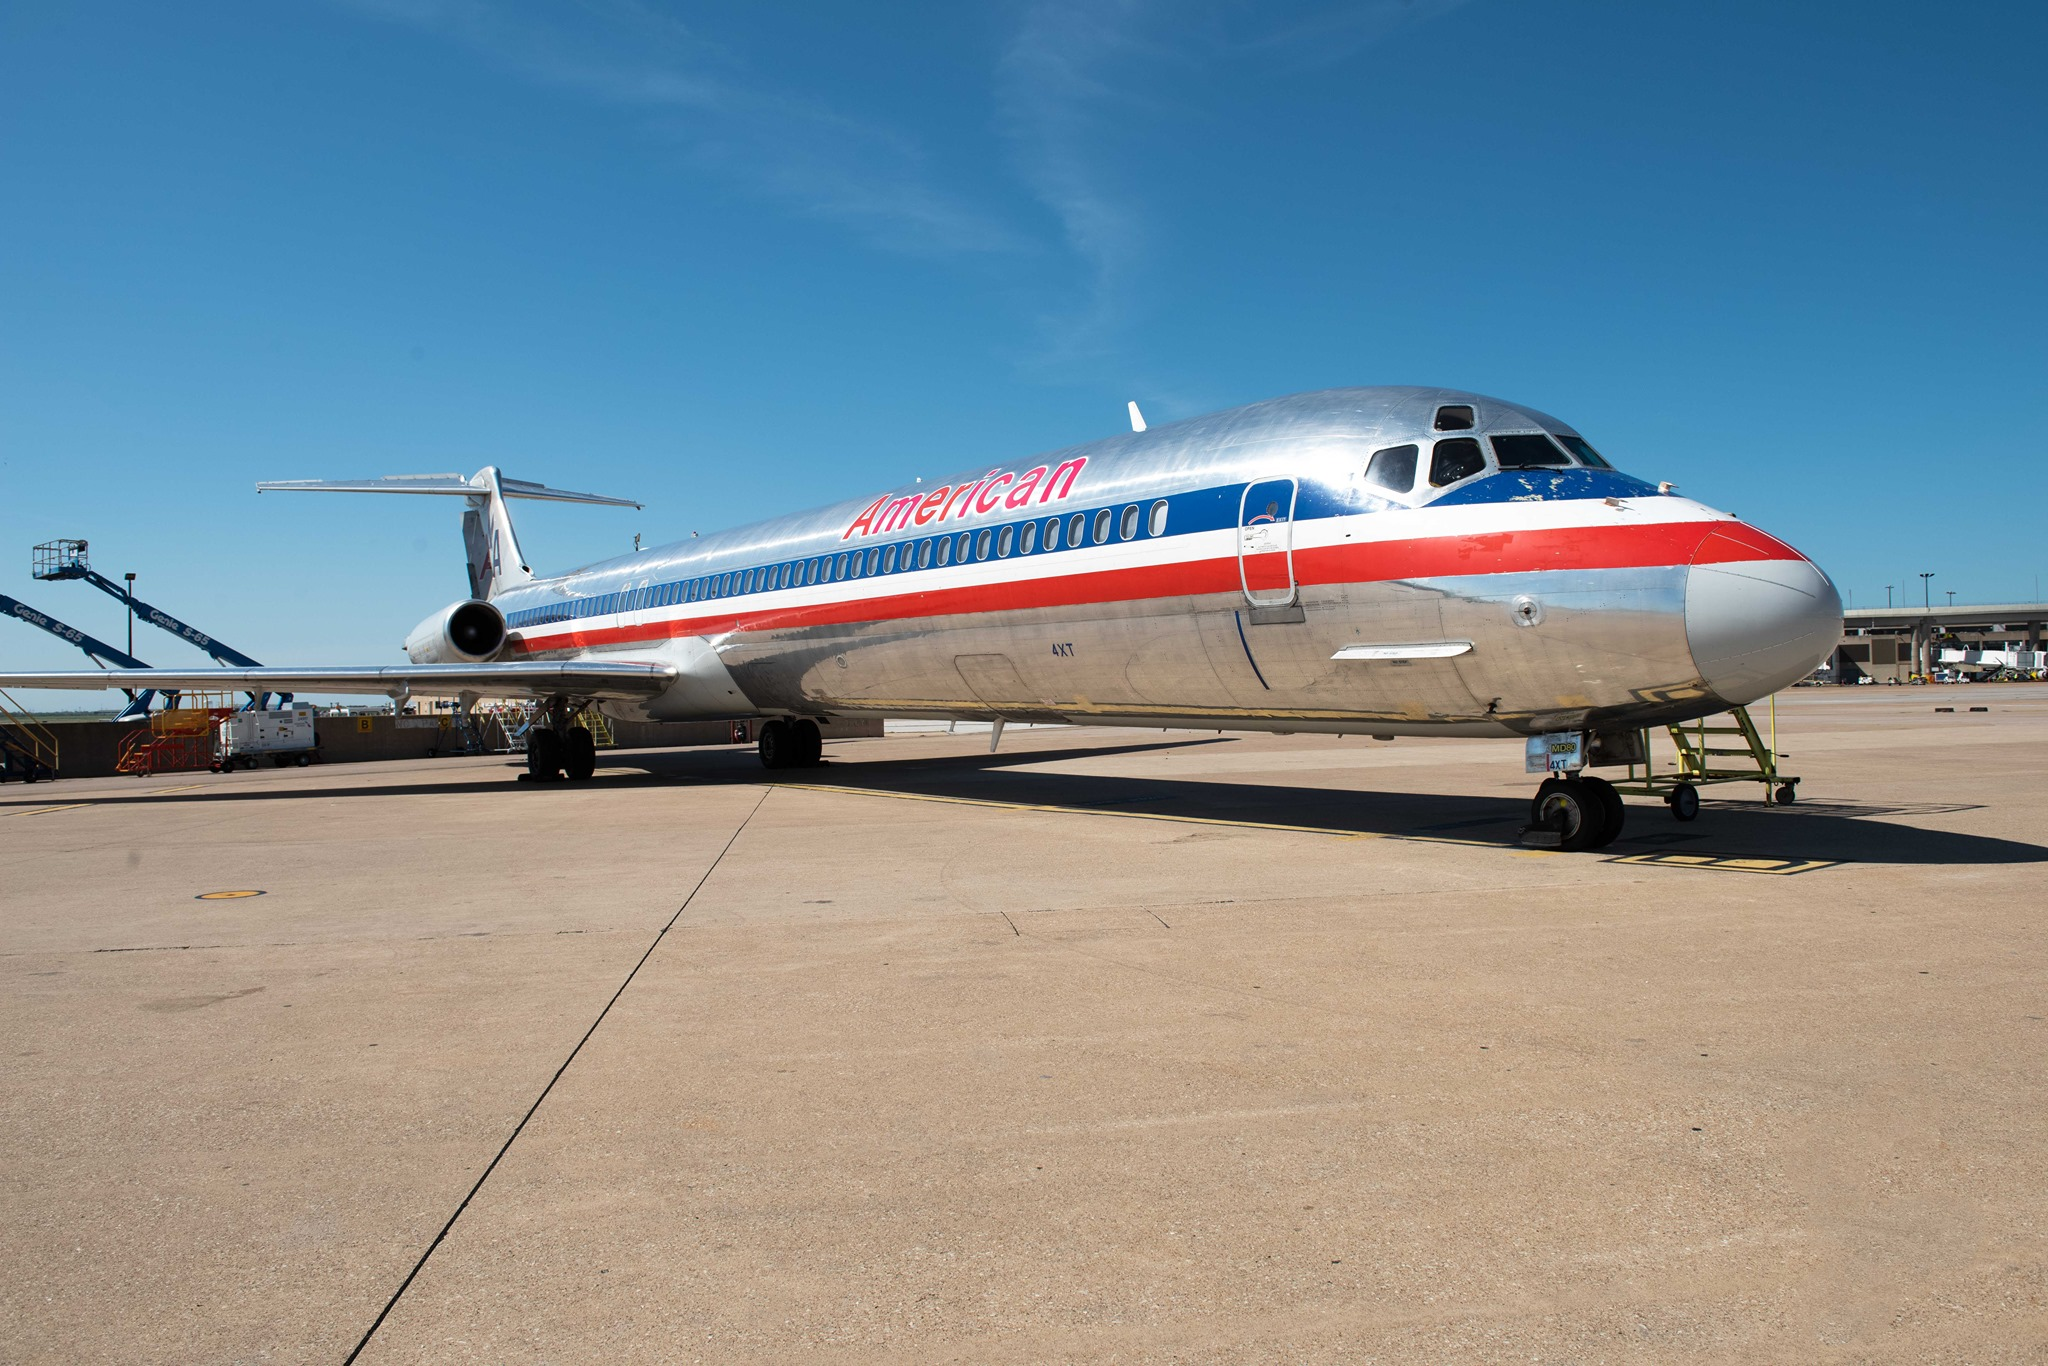 McDonell Douglas MD-80. Foto: American Airlines